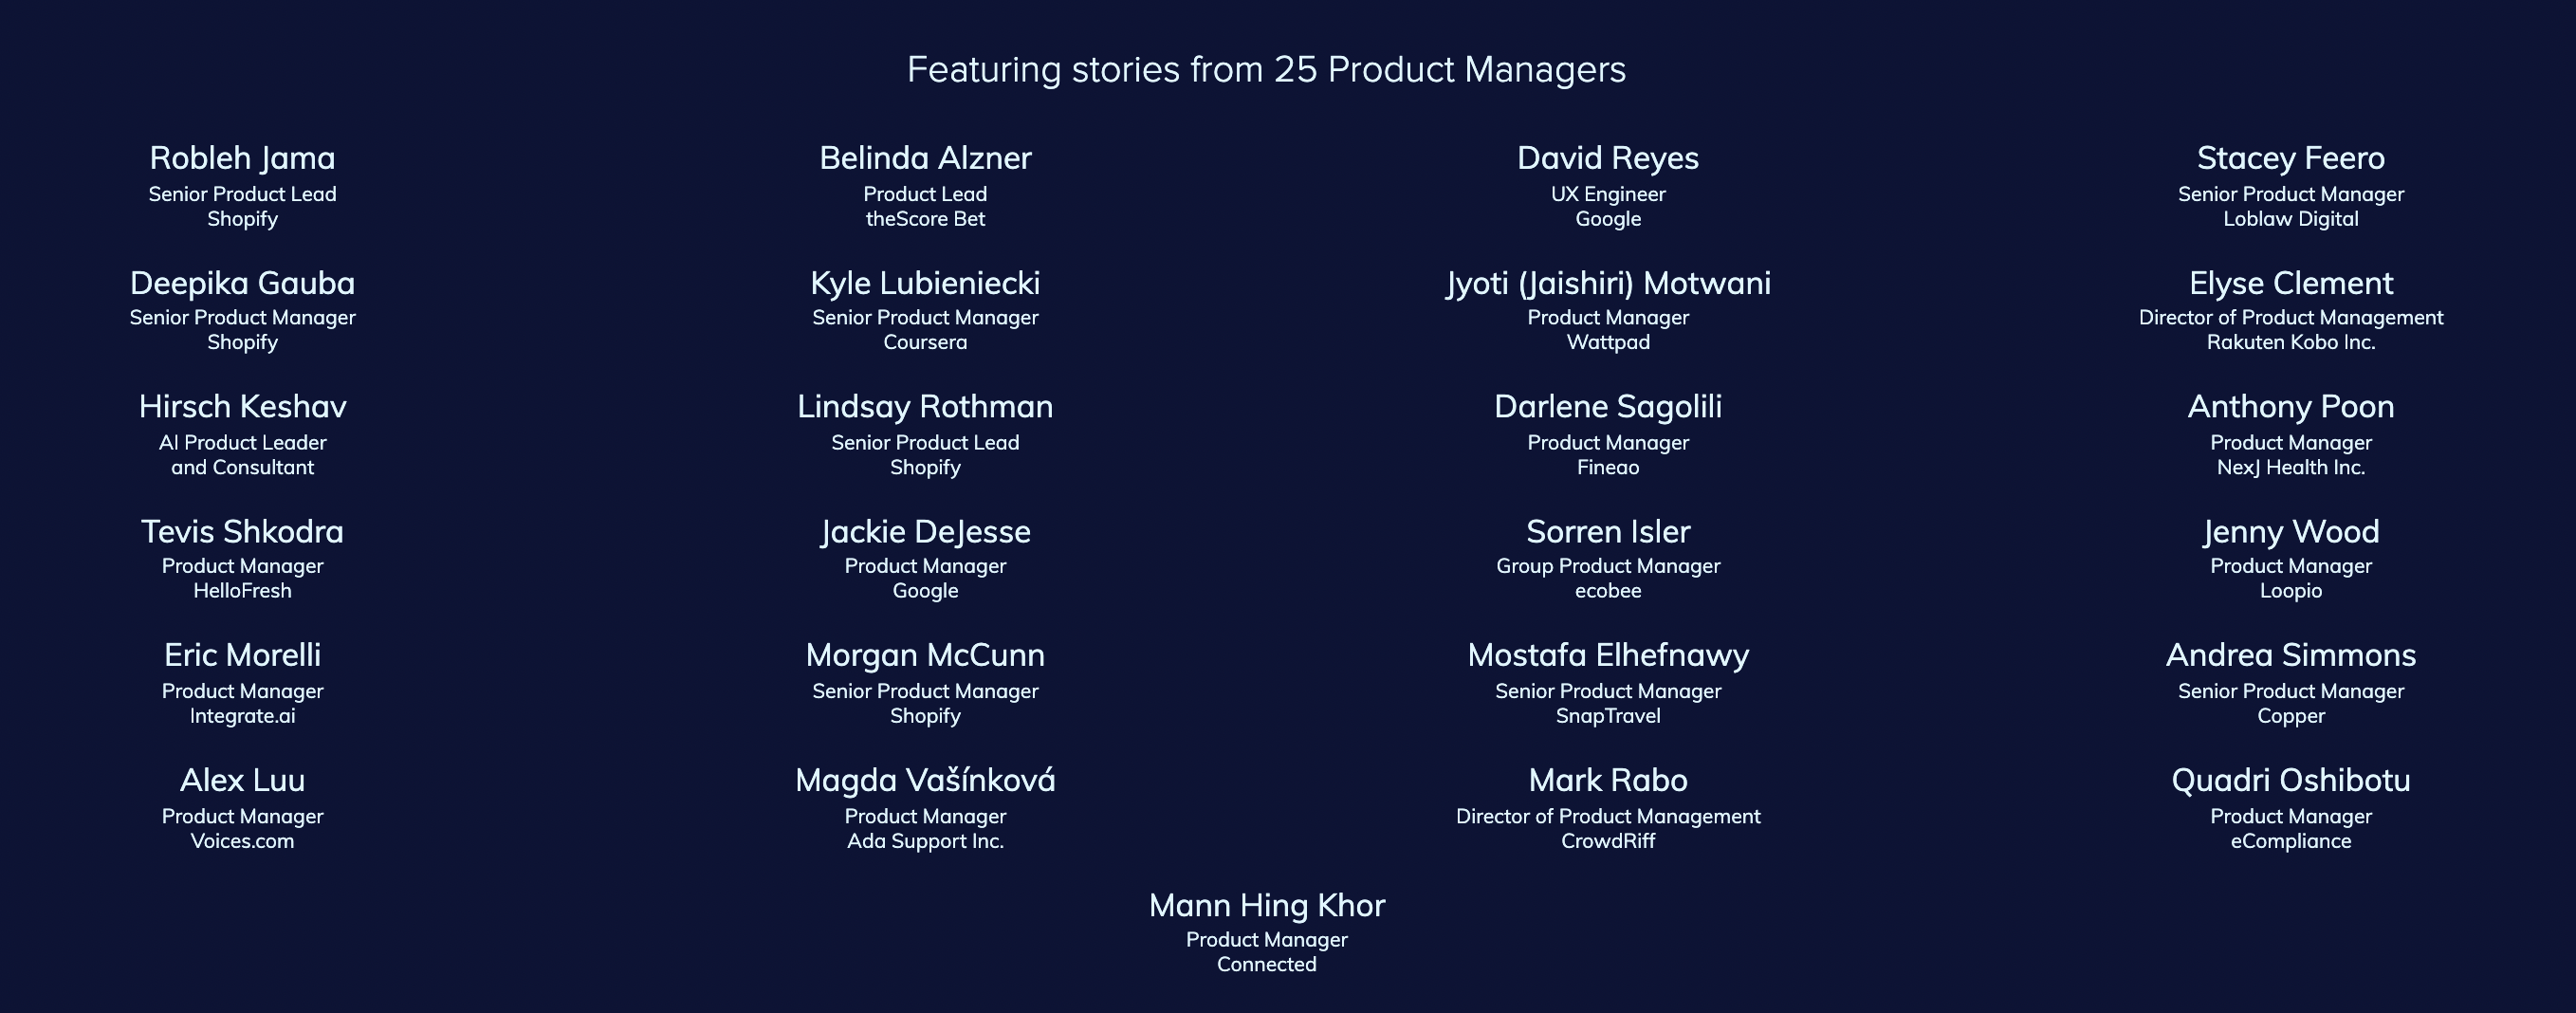 Landing page section featuring the ebook contributors.